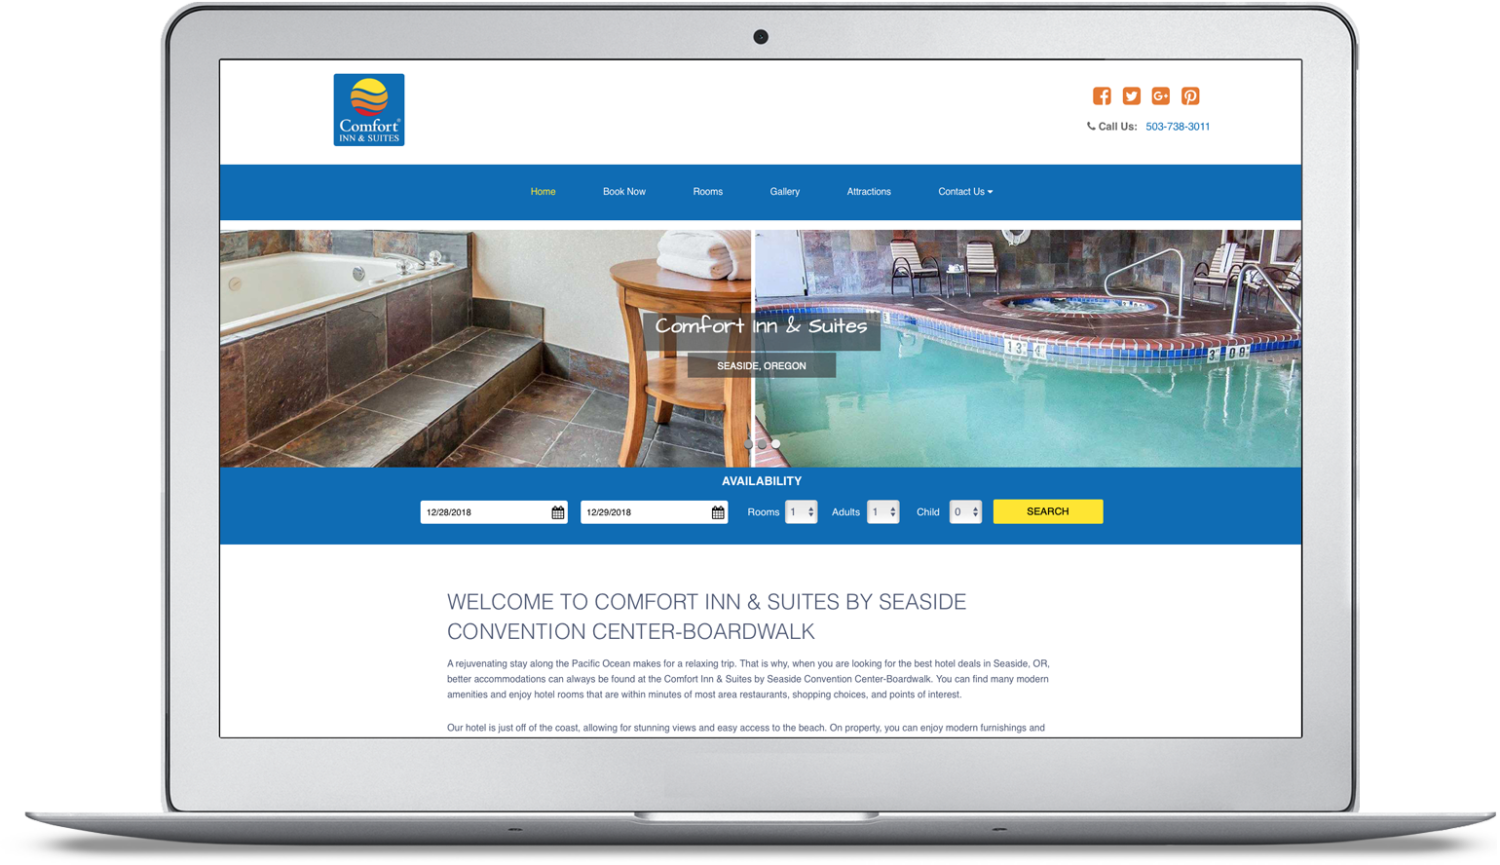 Comfort Inn & Suites by Seaside Convention Center/Boardwalk